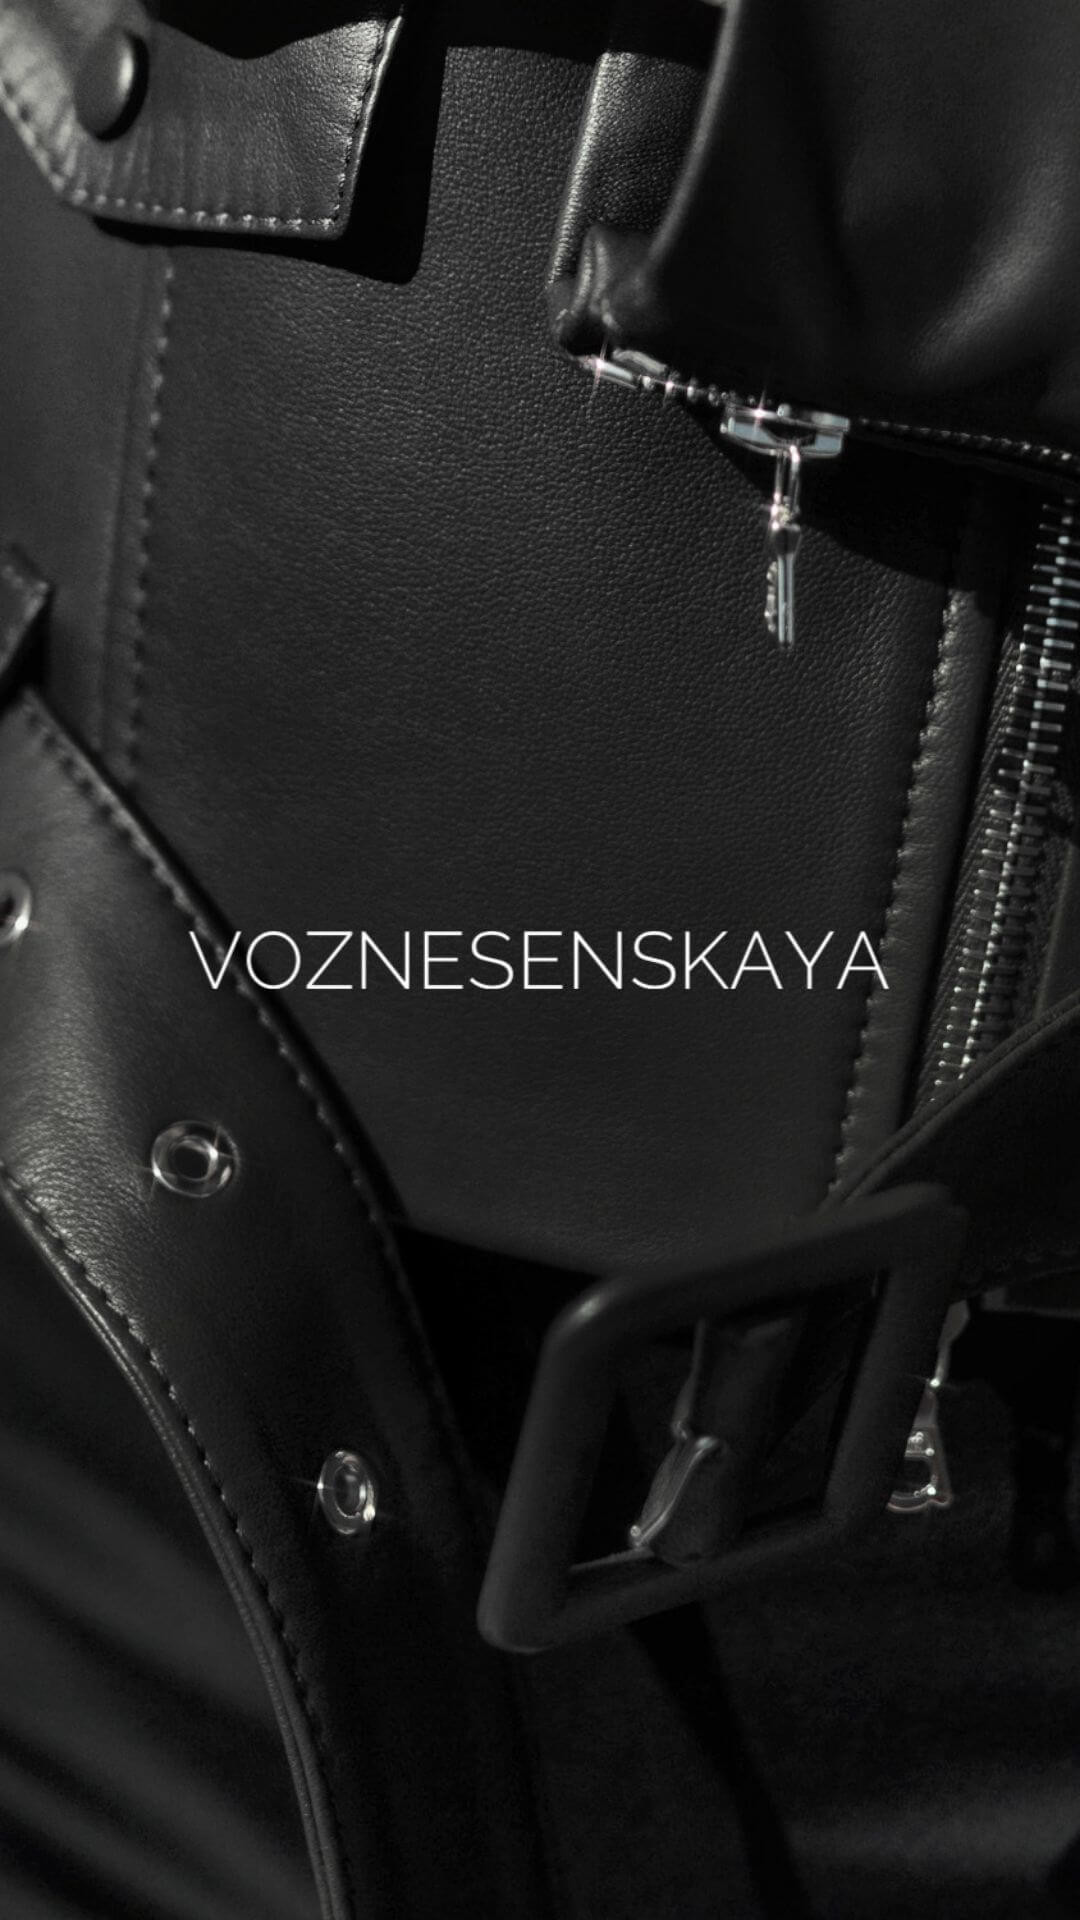 Repair and restoration of leather jackets